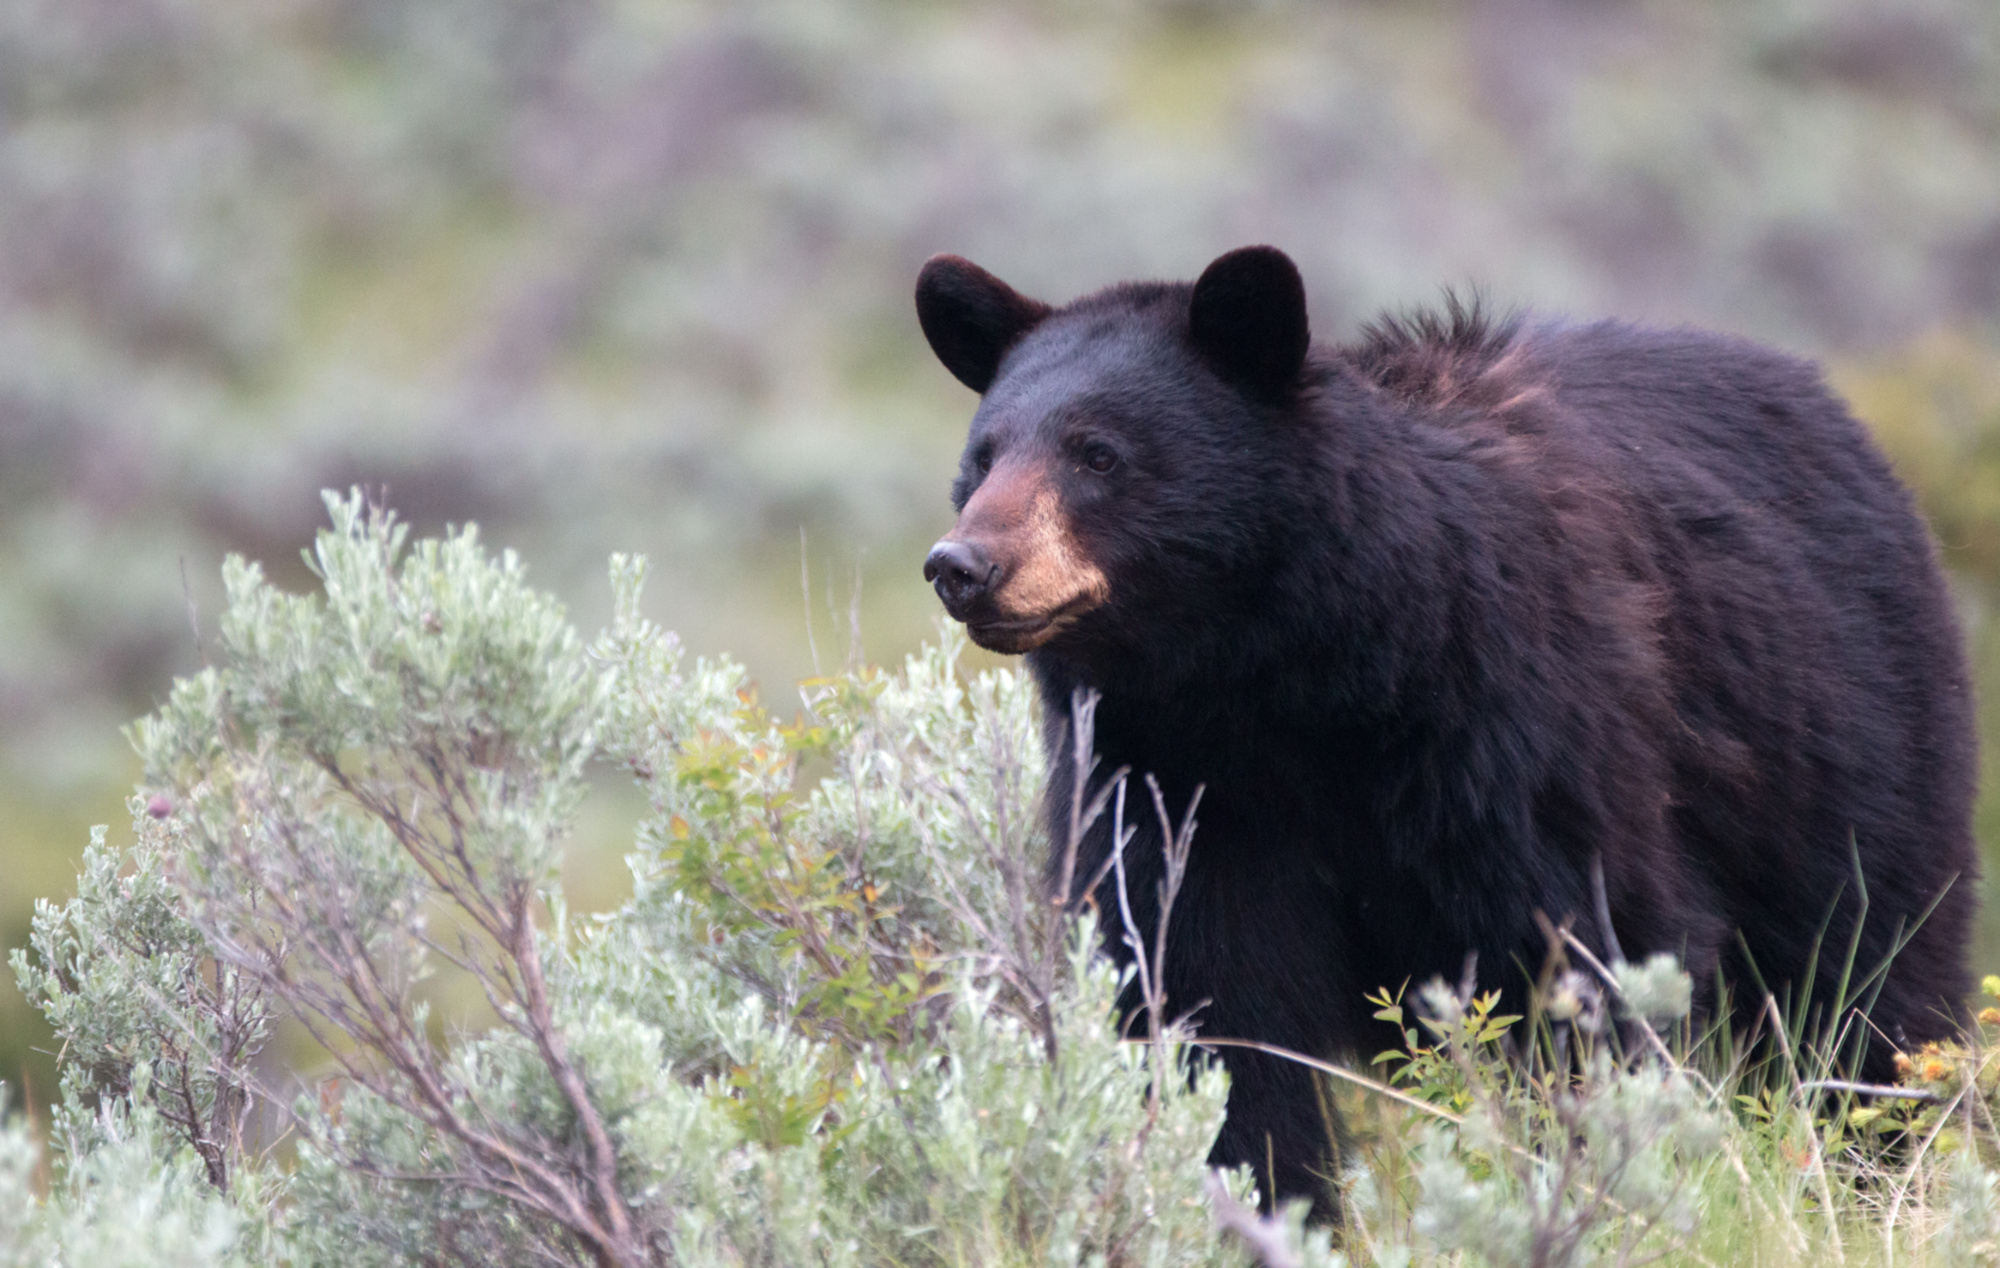 CANADA: Winnipeg man fends off bear in northwestern Ontario woods by kicking it in the stomach